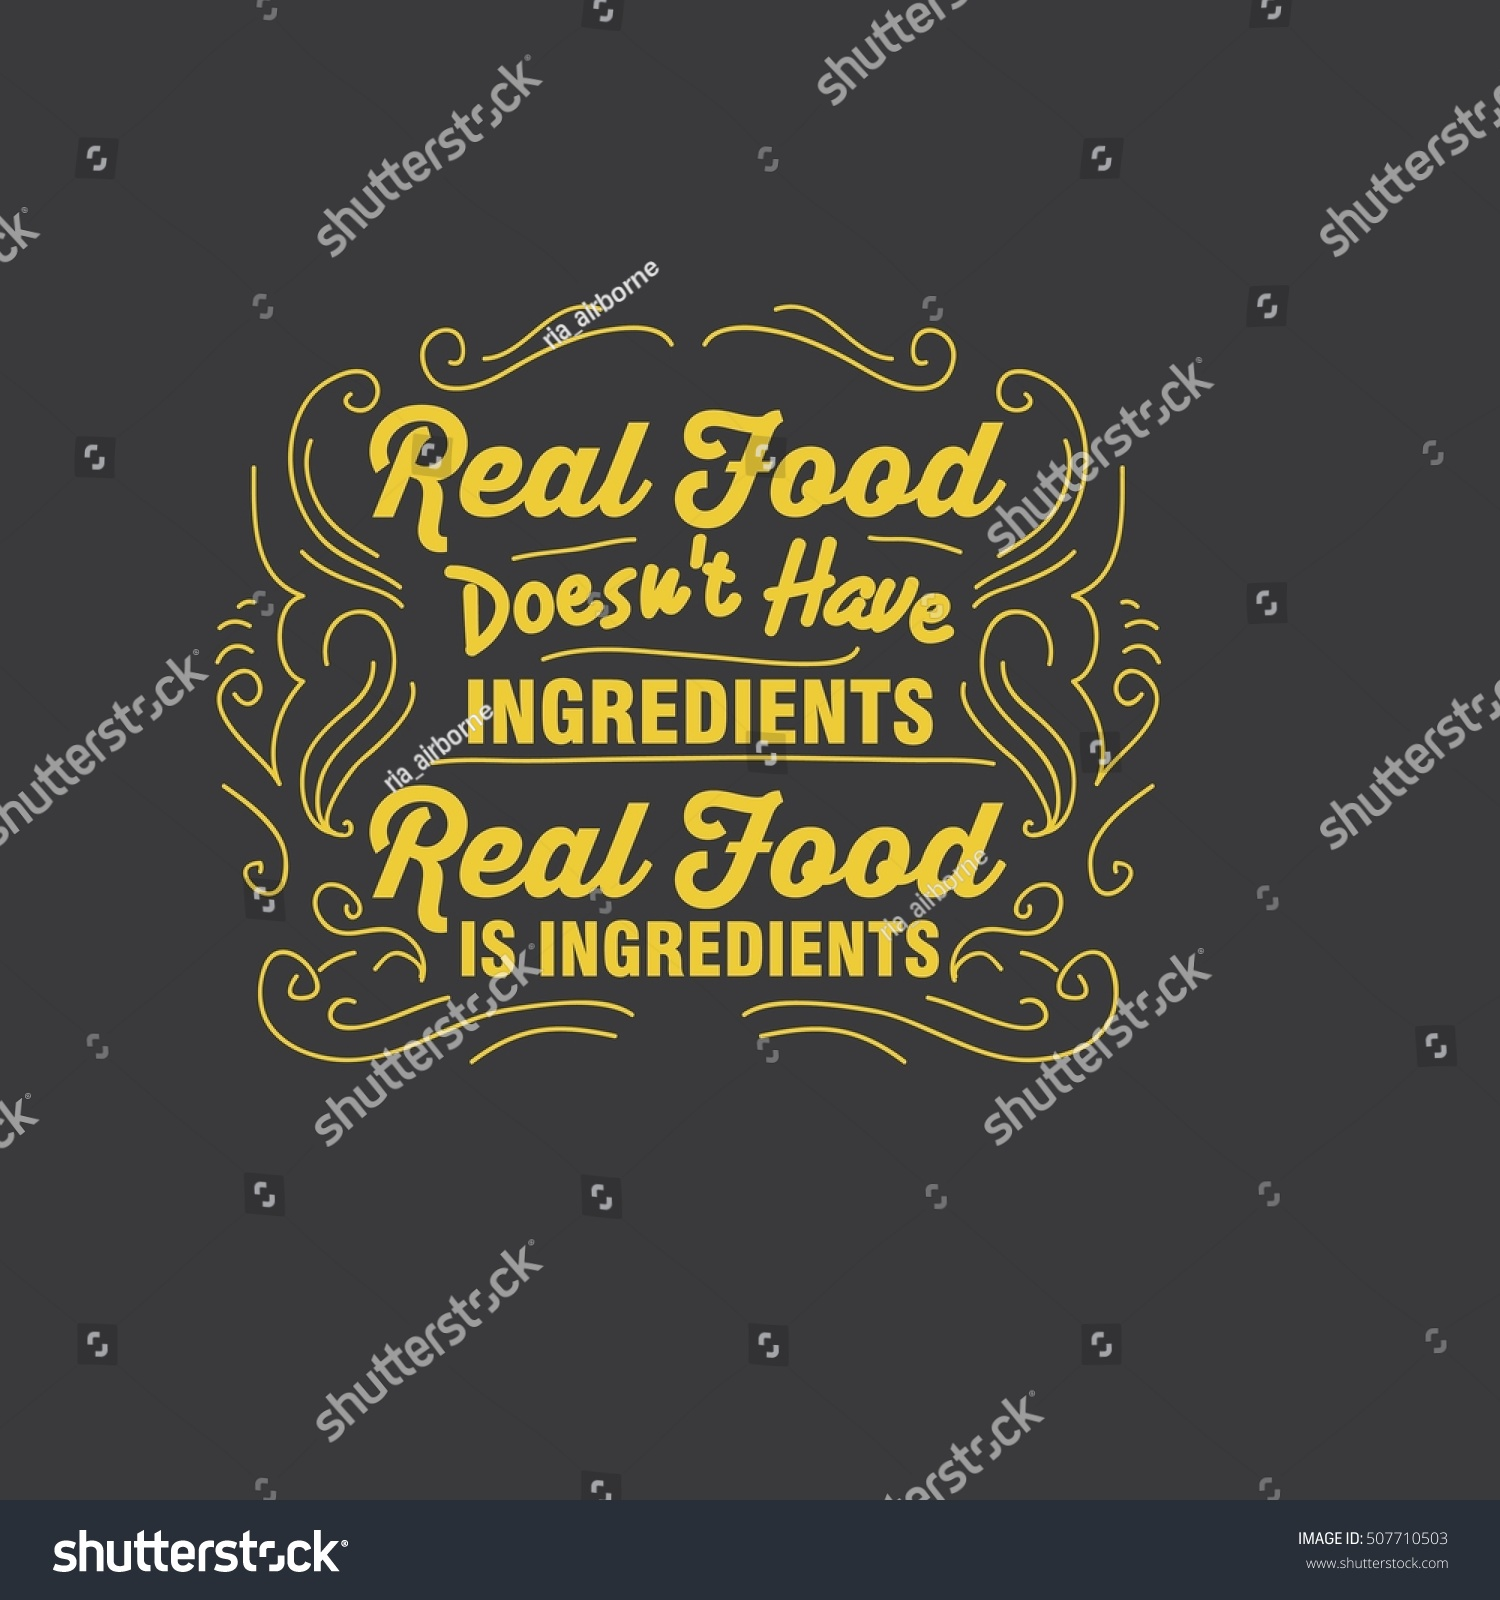 Good Health Quotes Health Quotes Good Food Quotes Stock Vector 507710503  Shutterstock